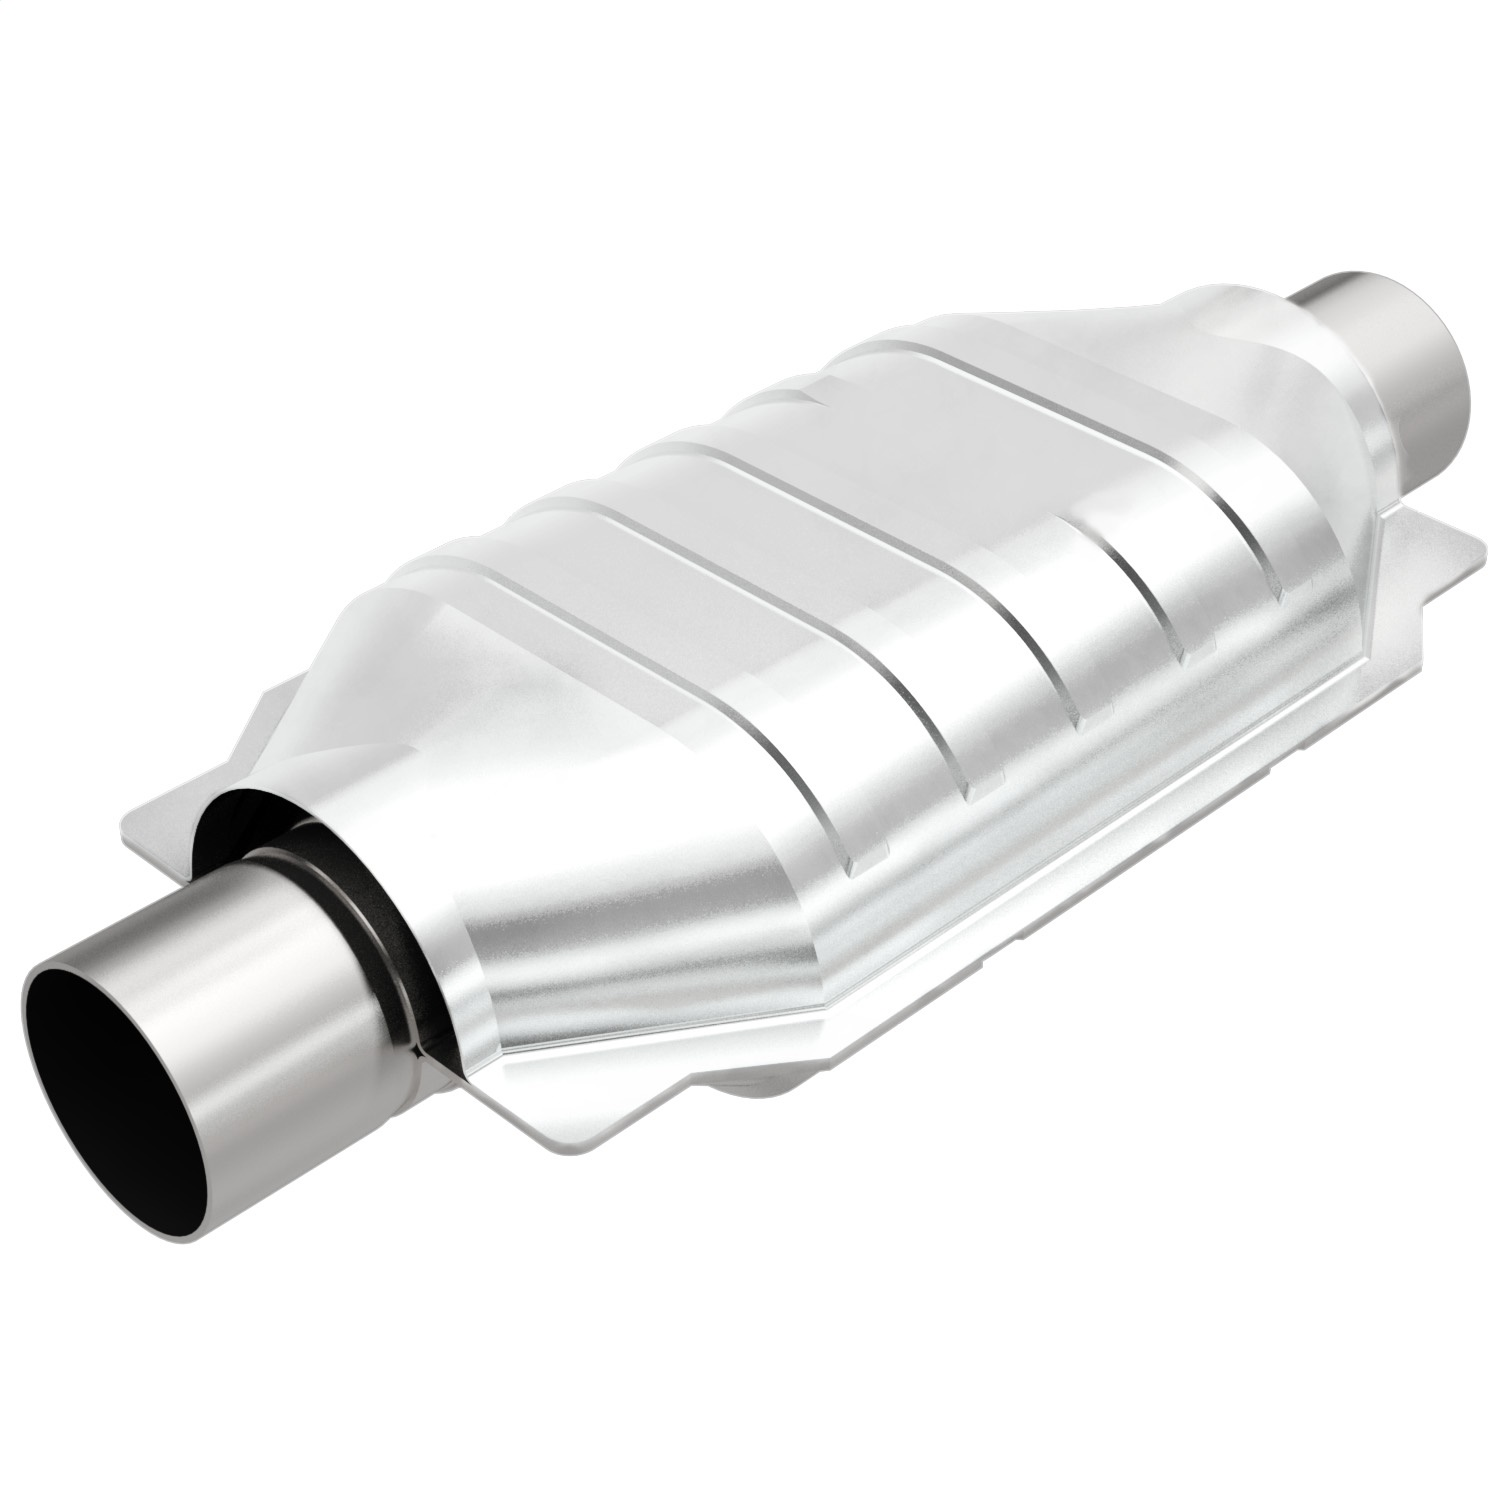 MagnaFlow Exhaust Products Catalytic Converter (339006)